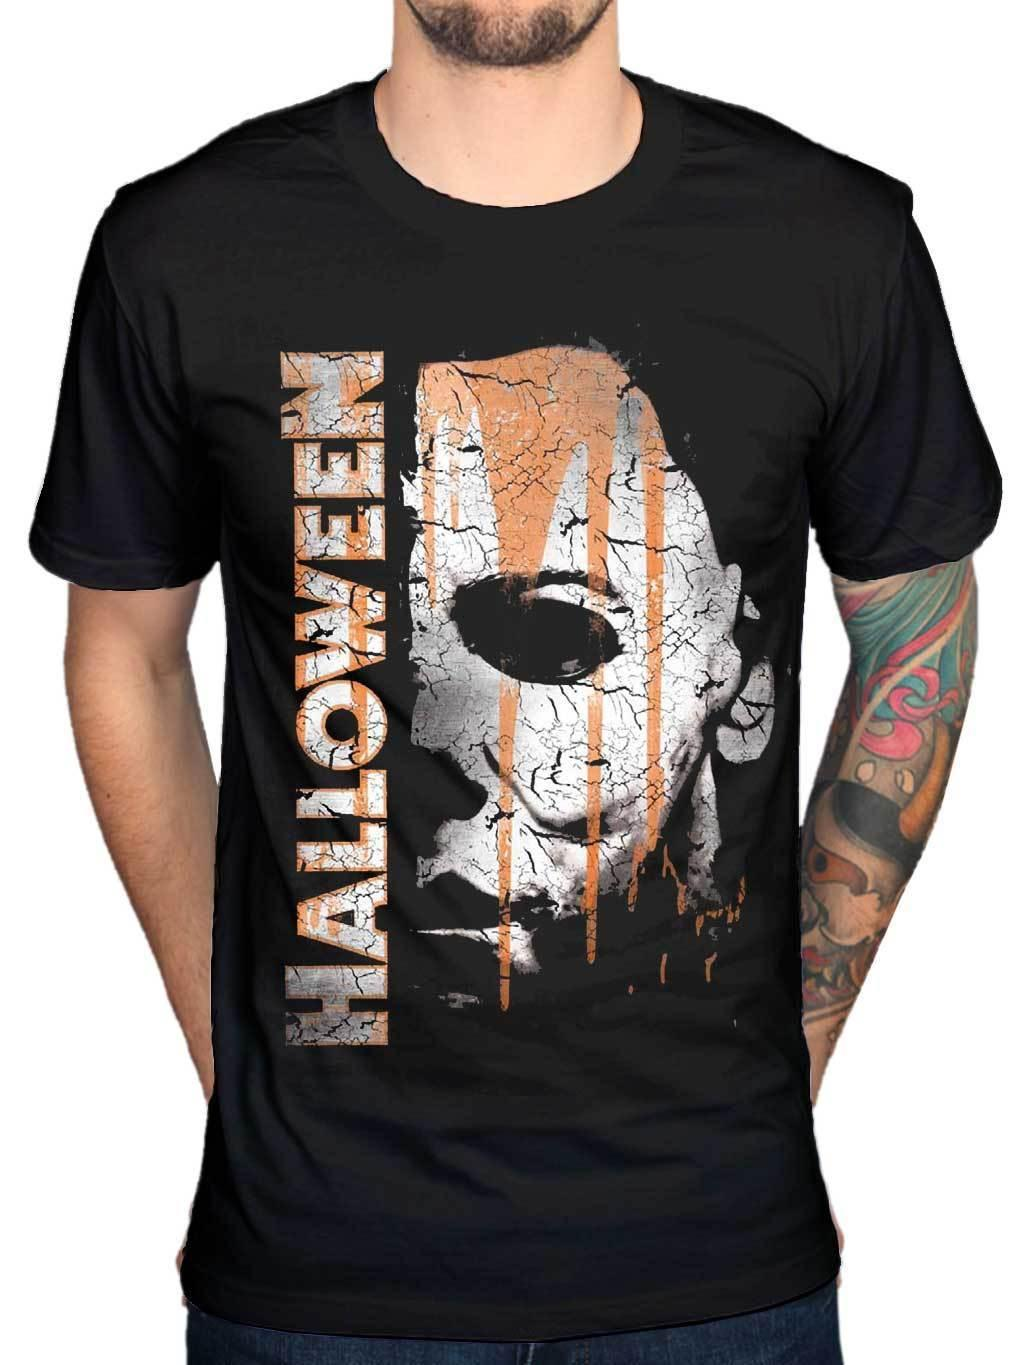 2017 mens new cute halloween michael myers mask and drips t shirt scary movie horror design t shirt hipster tops mens tees men t shirts geek t shirts from